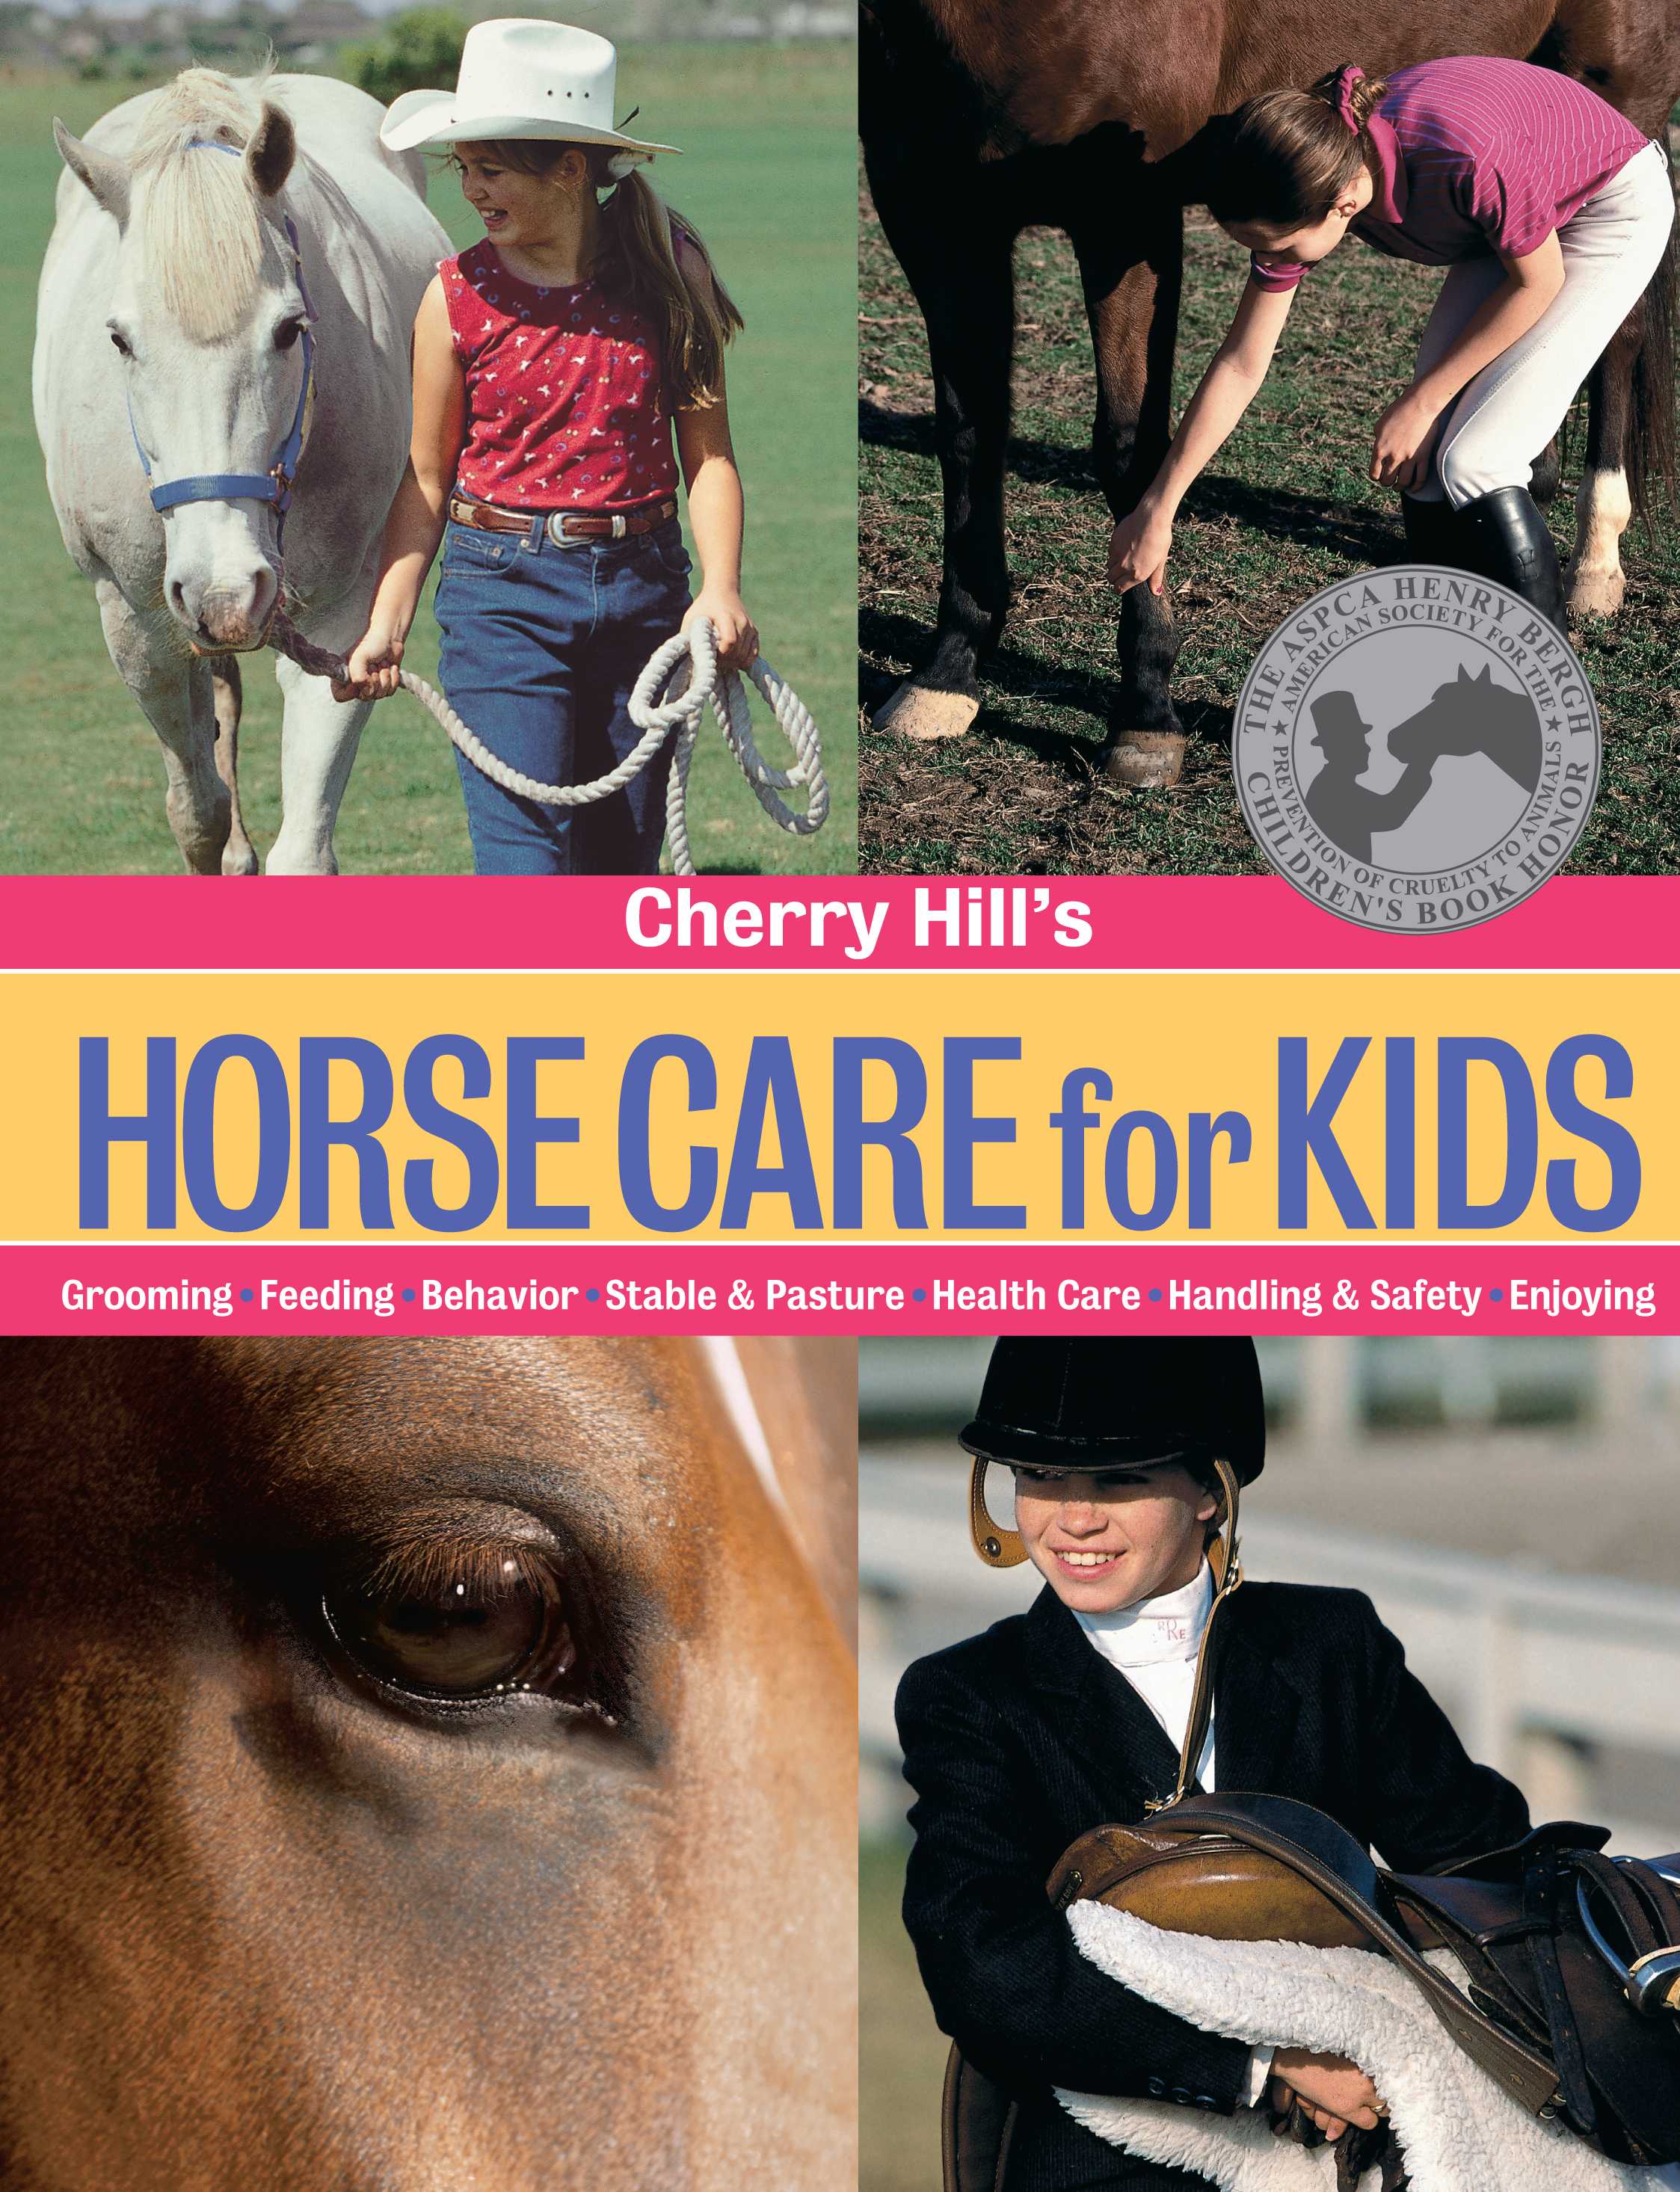 Cherry Hill's Horse Care for Kids Grooming, Feeding, Behavior, Stable & Pasture, Health Care, Handling & Safety, Enjoying - Cherry Hill